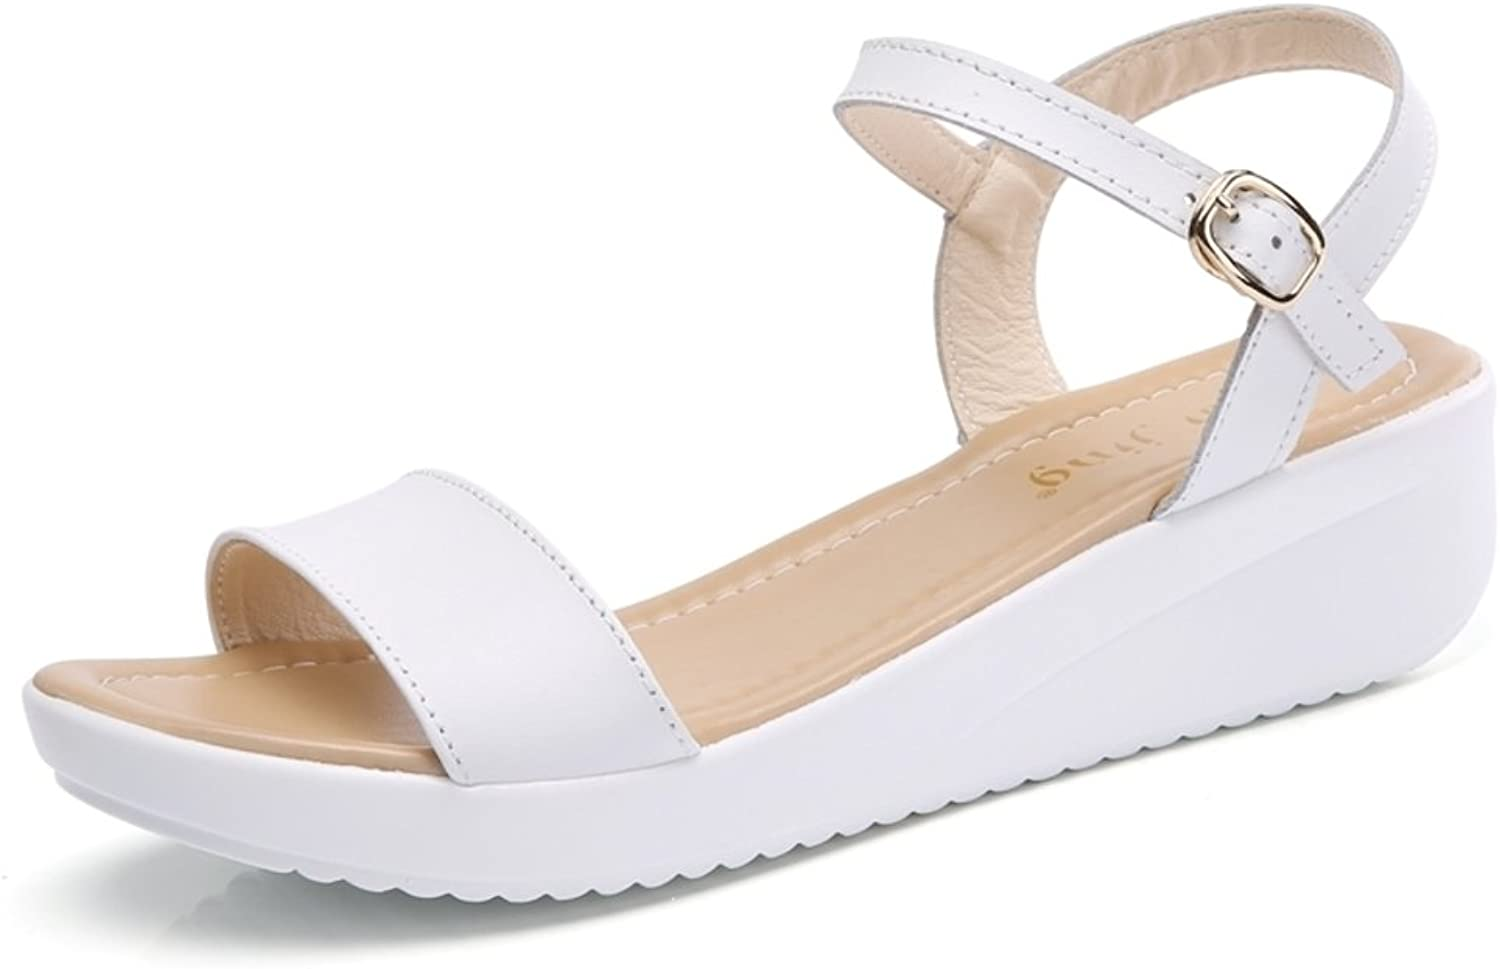 MET RXL Lady,Summer,Casual Sandals Wedges,Buckle Sandals